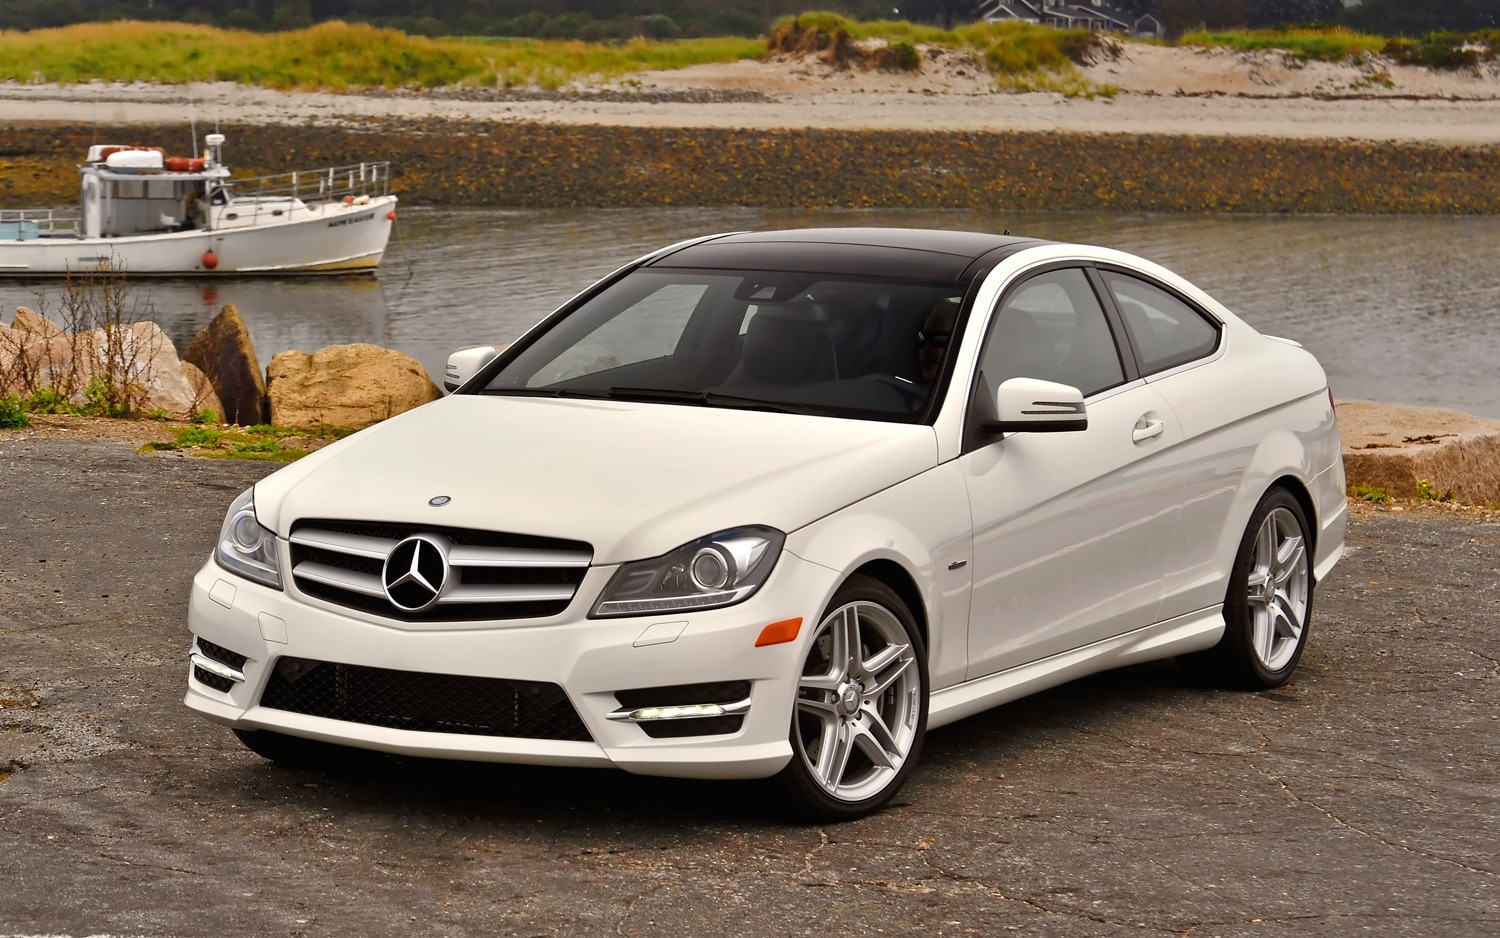 Driven 2012 mercedes benz c350 coupe 4matic automobile for Mercedes benz c300 4matic 2012